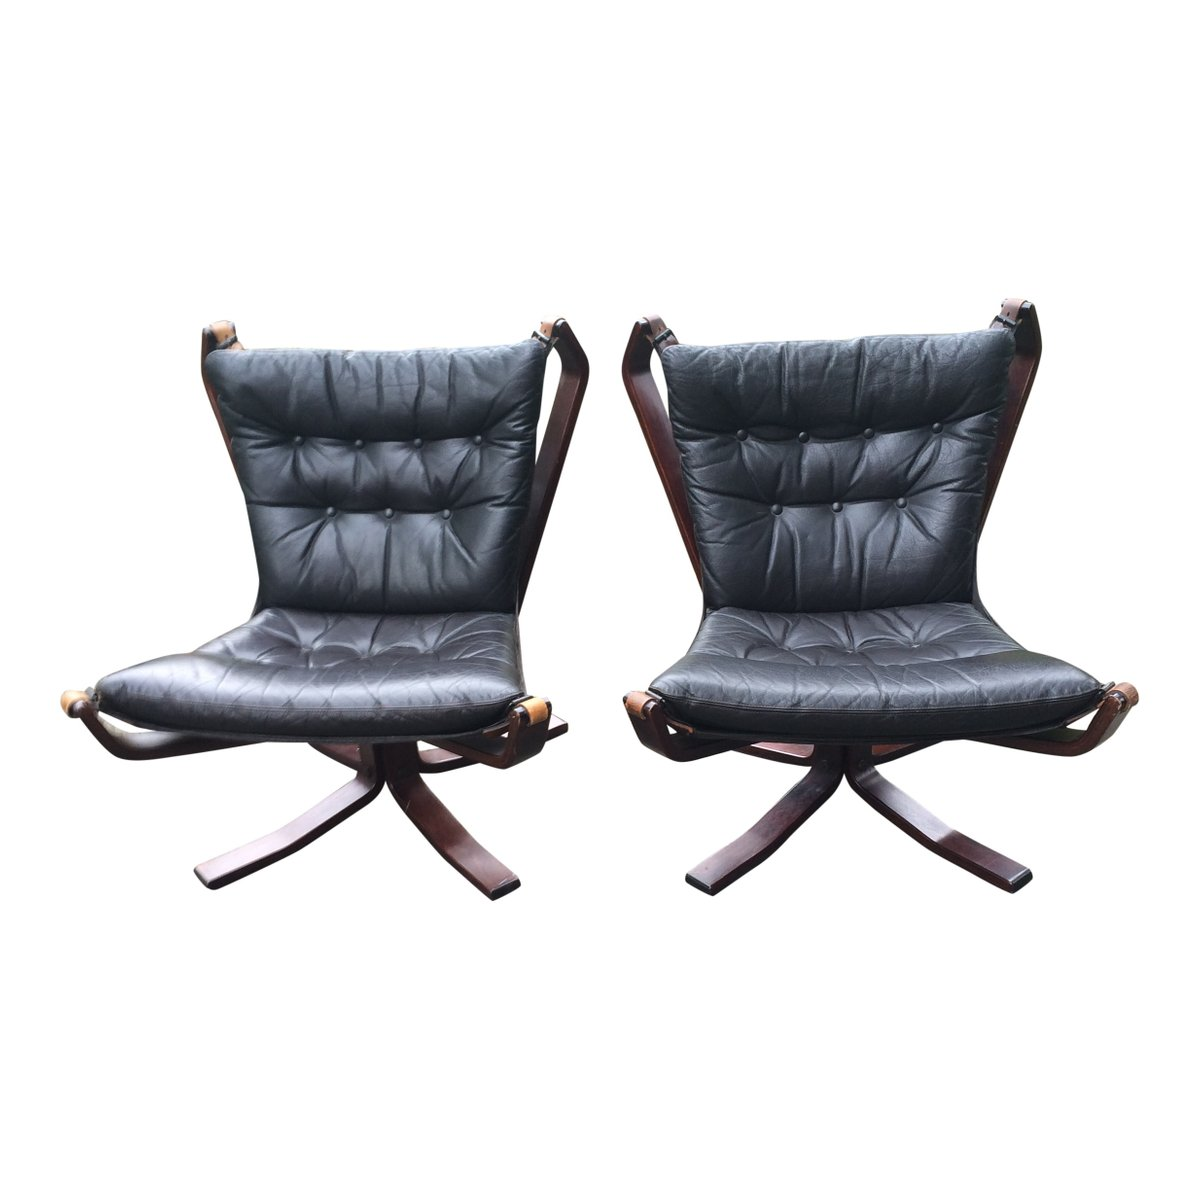 black leather falcon chair by sigurd ressell set of 2 for sale at pamono. Black Bedroom Furniture Sets. Home Design Ideas